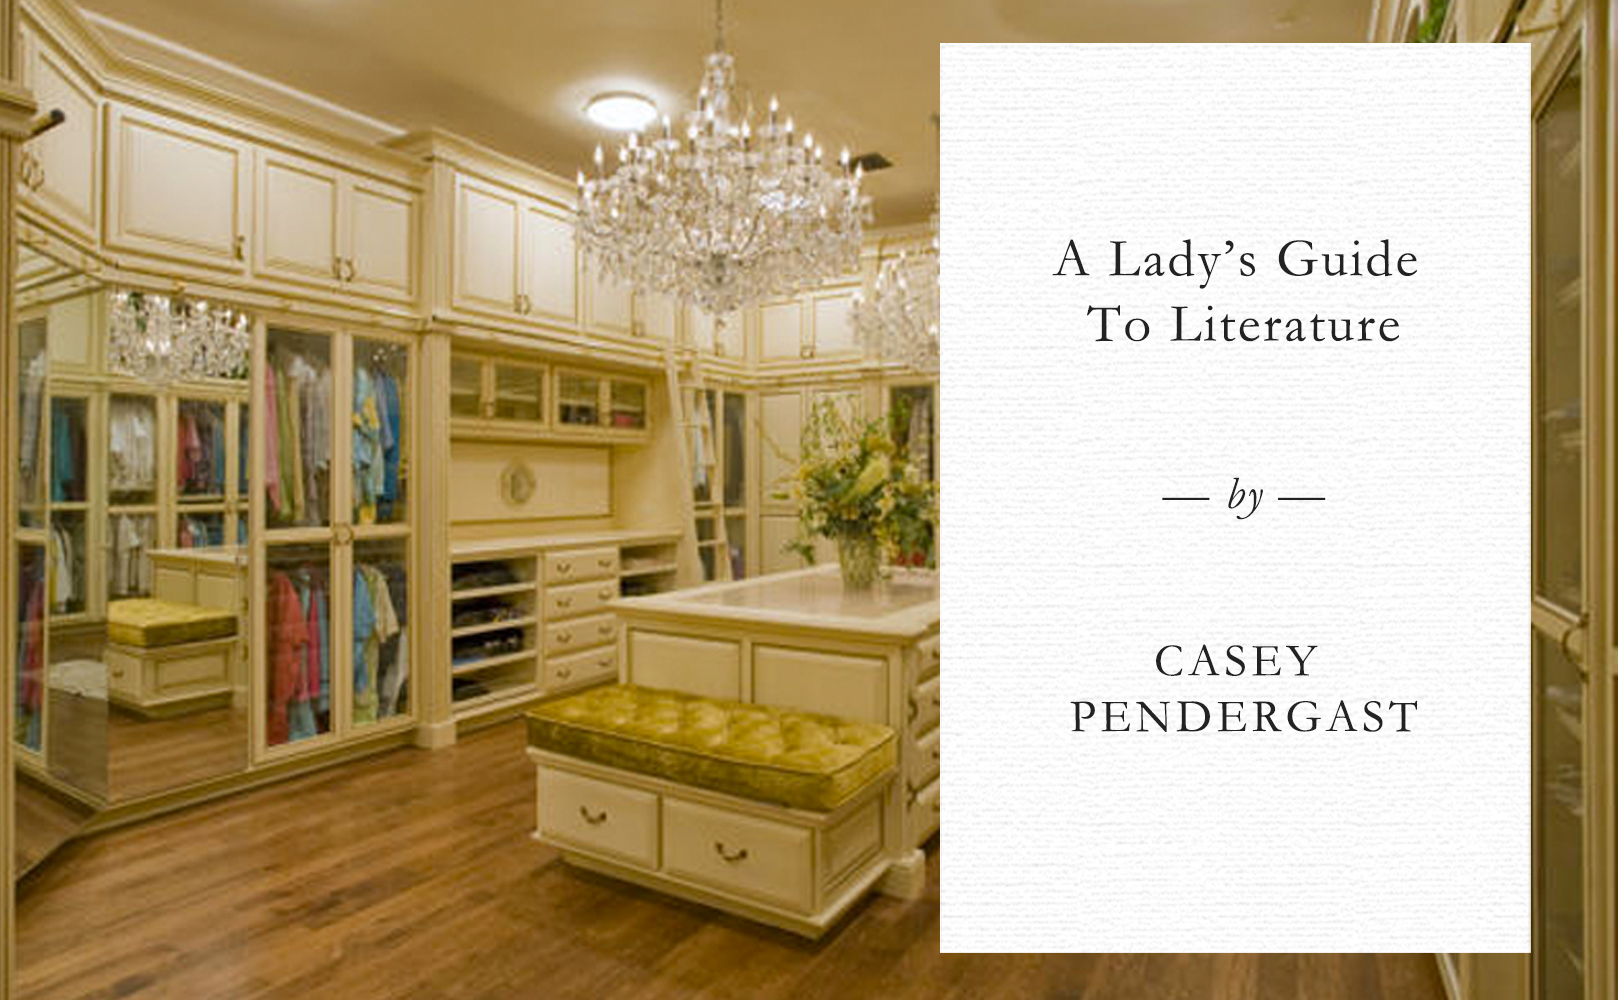 A Lady's Guide to Literature